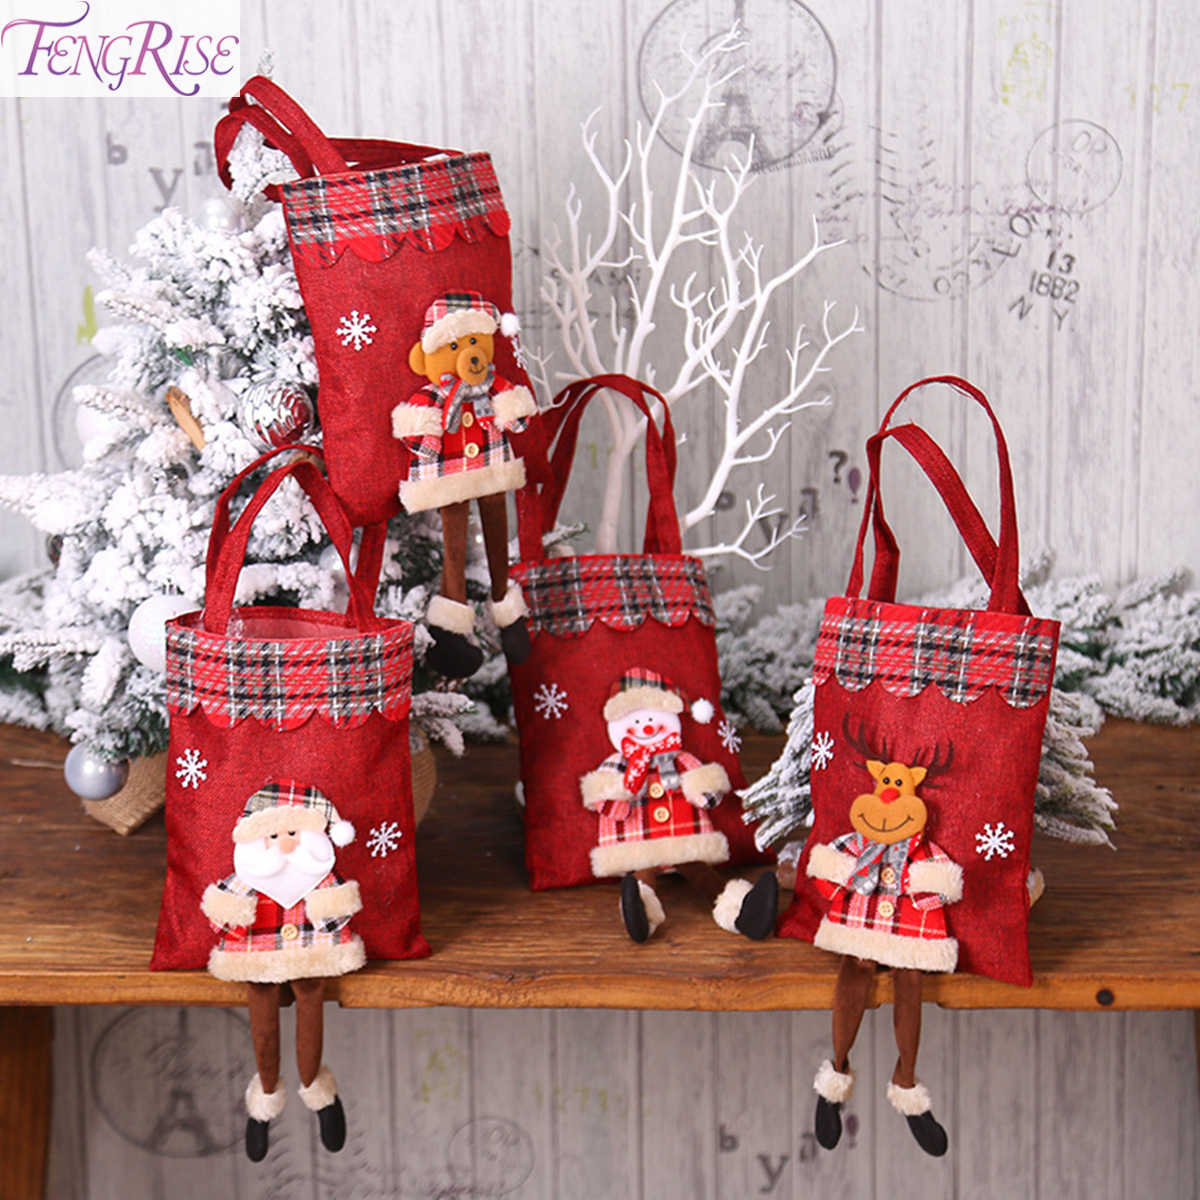 Elk Santa Claus Christmas Gift Bag Candy Bag Stockings Christmas Decorations For Home Christmas Tree Decor Ornament 2019 Navidad